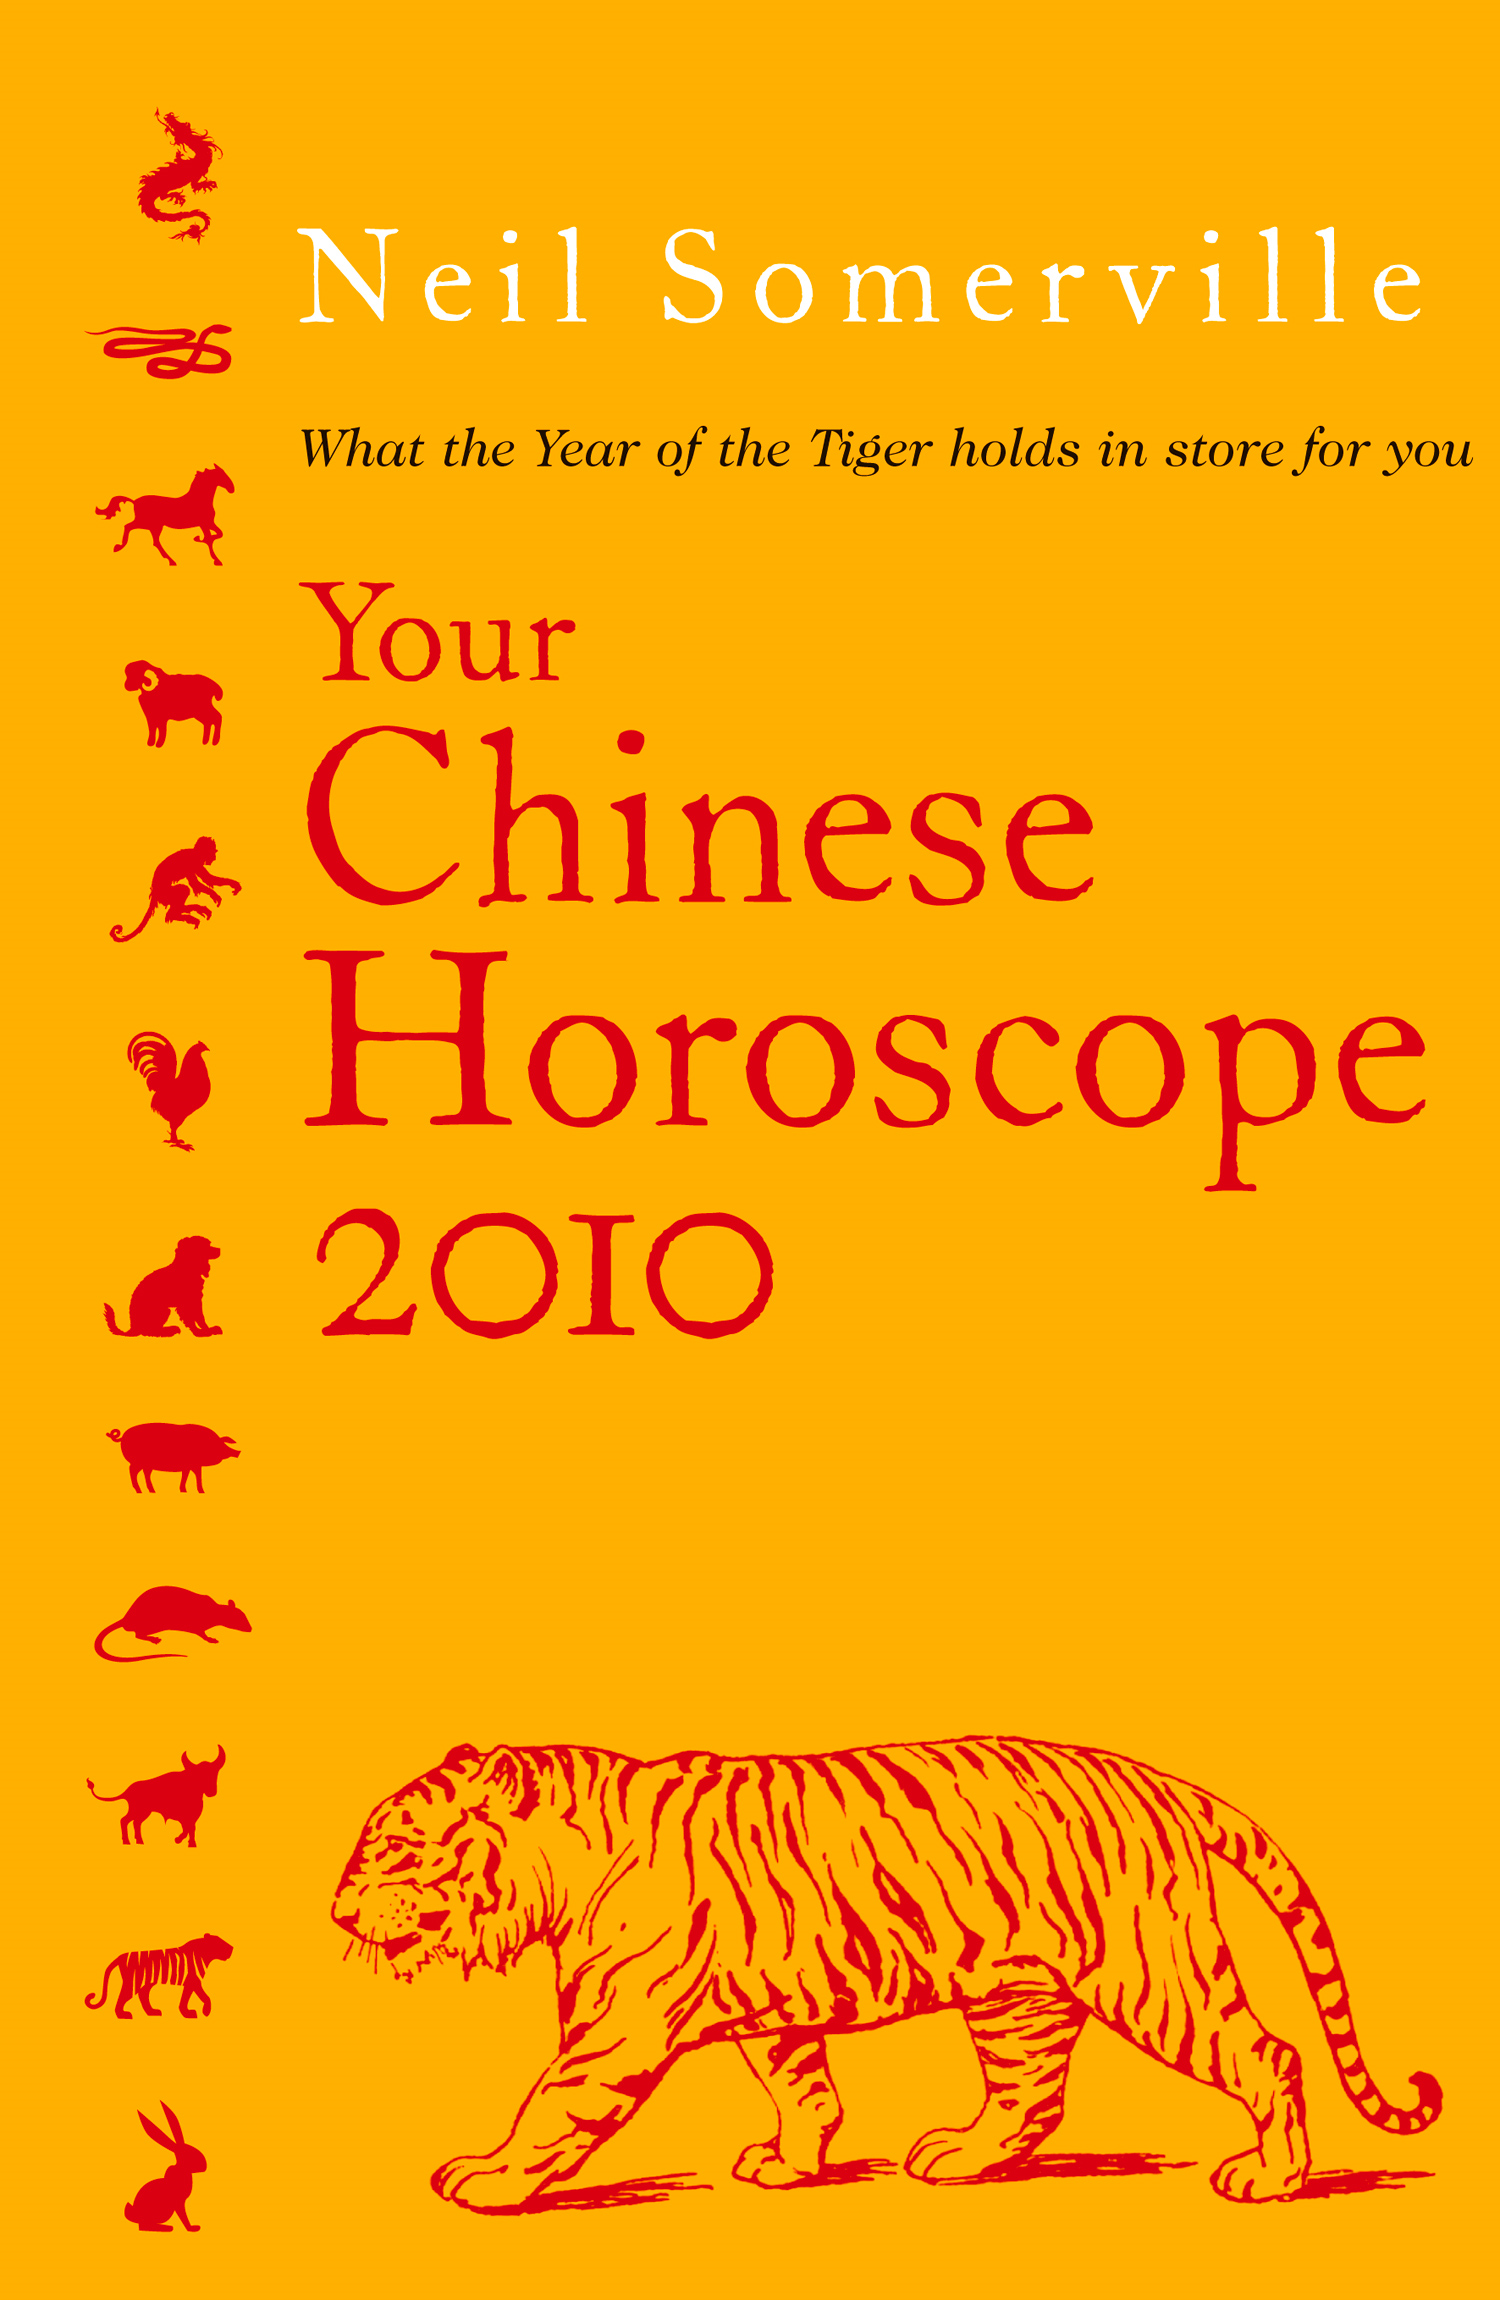 Your Chinese Horoscope 2010 By: Neil Somerville